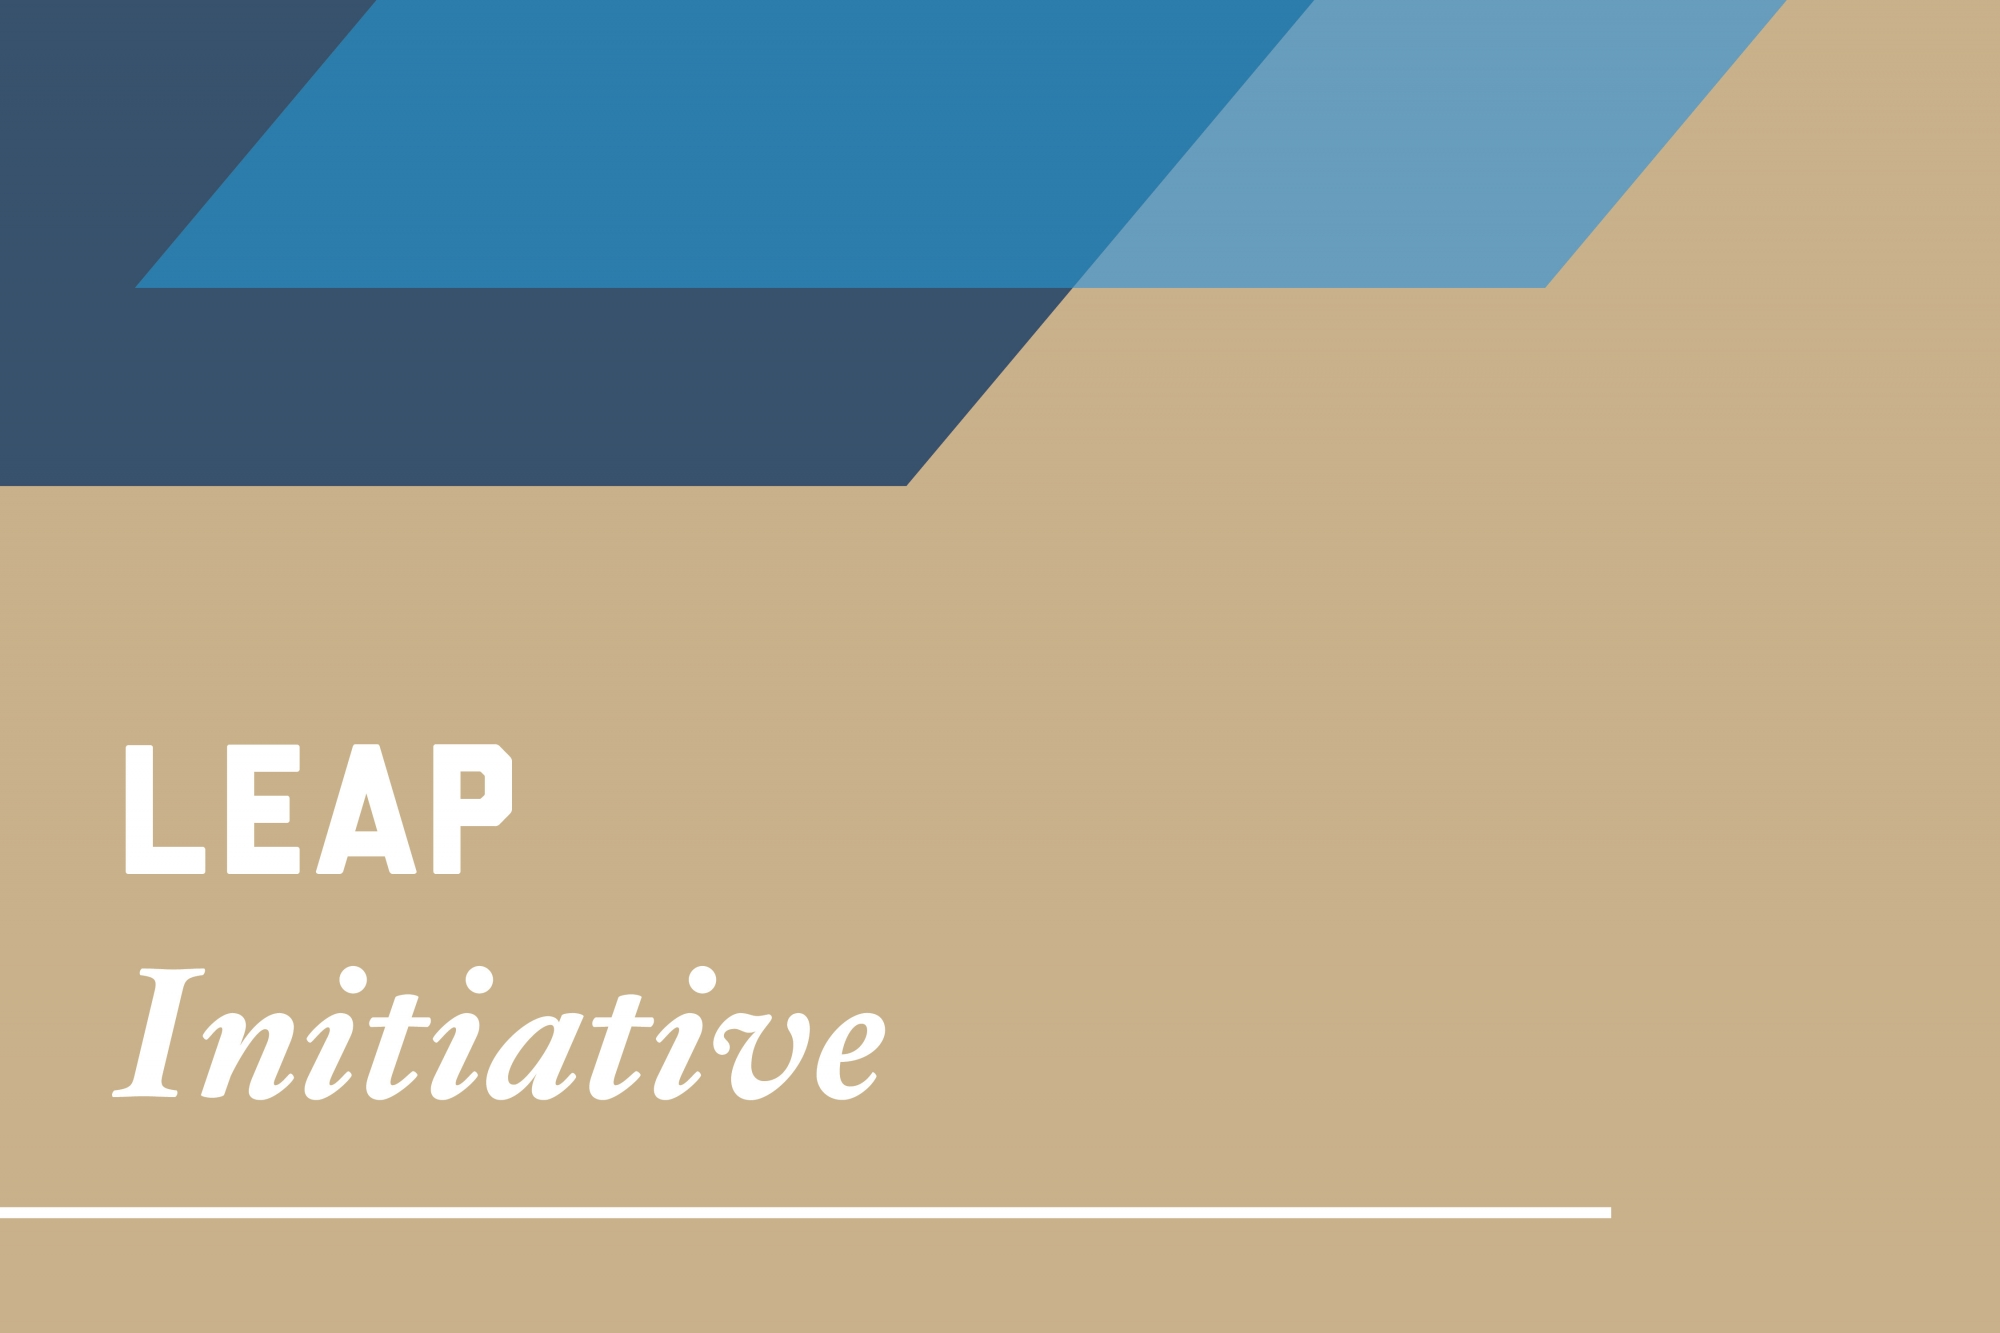 Graphic: LEAP Initiative